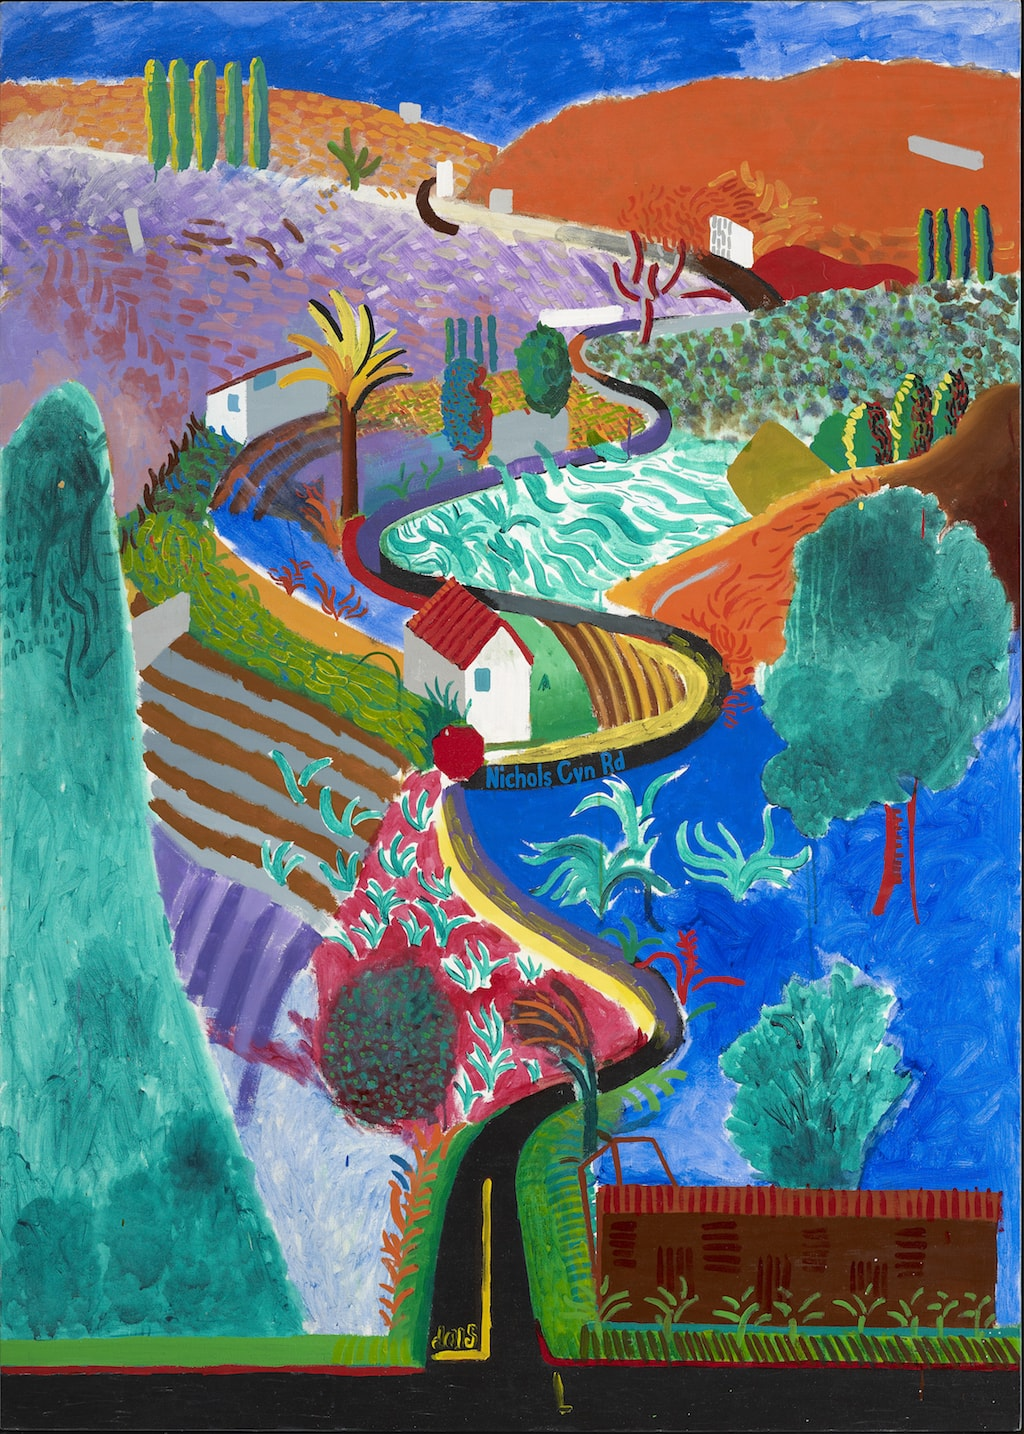 David Hockney, 'Nichols Canyon', 1980 | © David Hockney / Pru Cumings Associates Ltd.